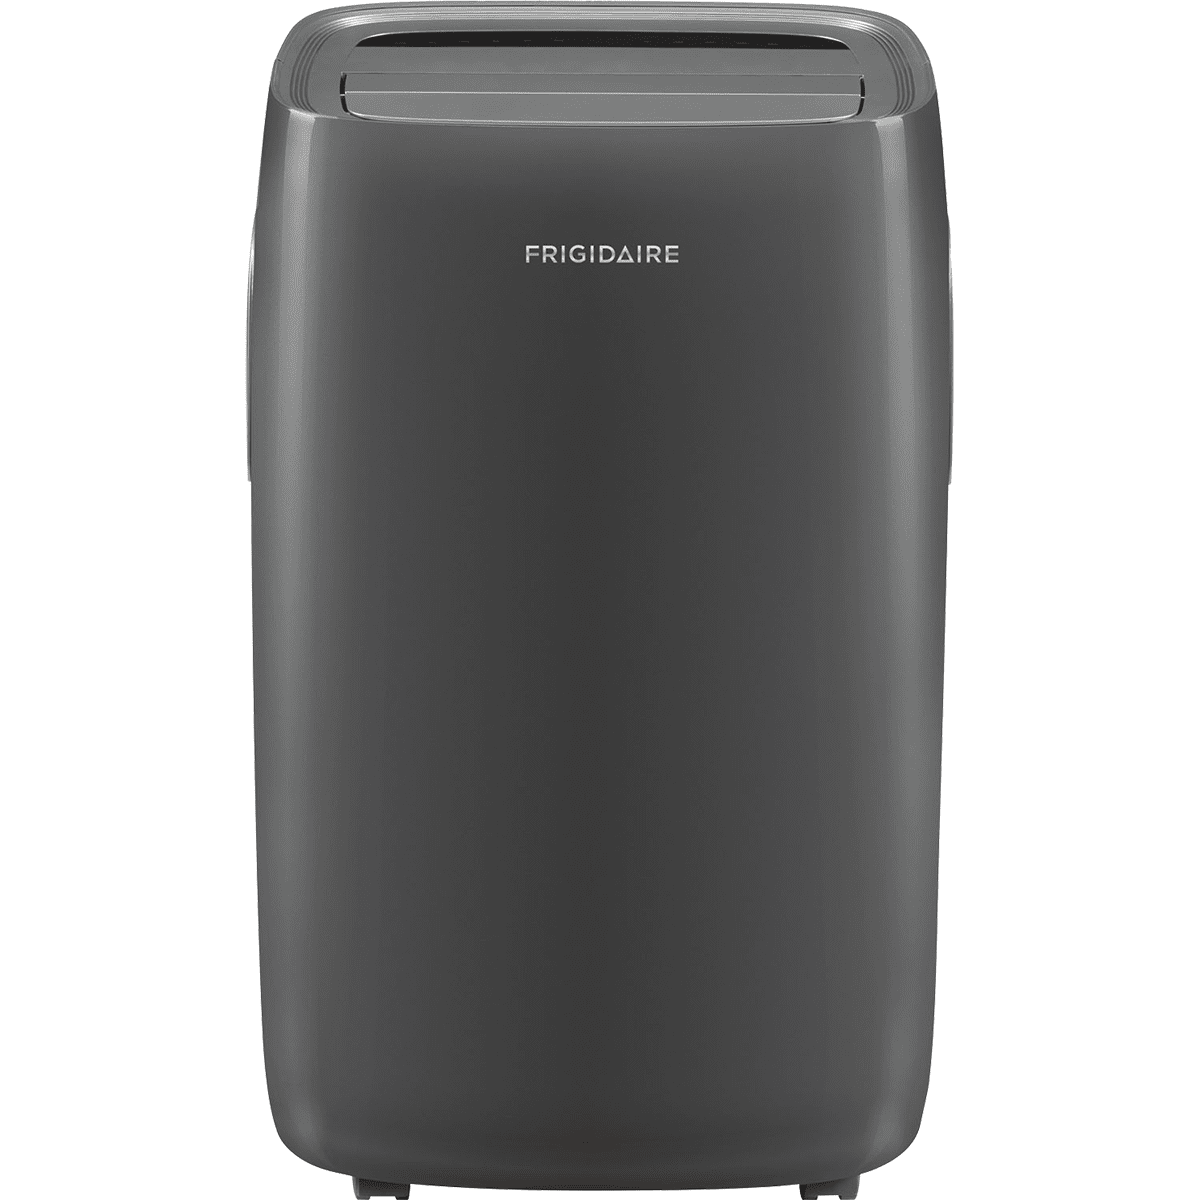 Frigidaire FFPA1222T1 12,000 BTU Portable Air Conditioner